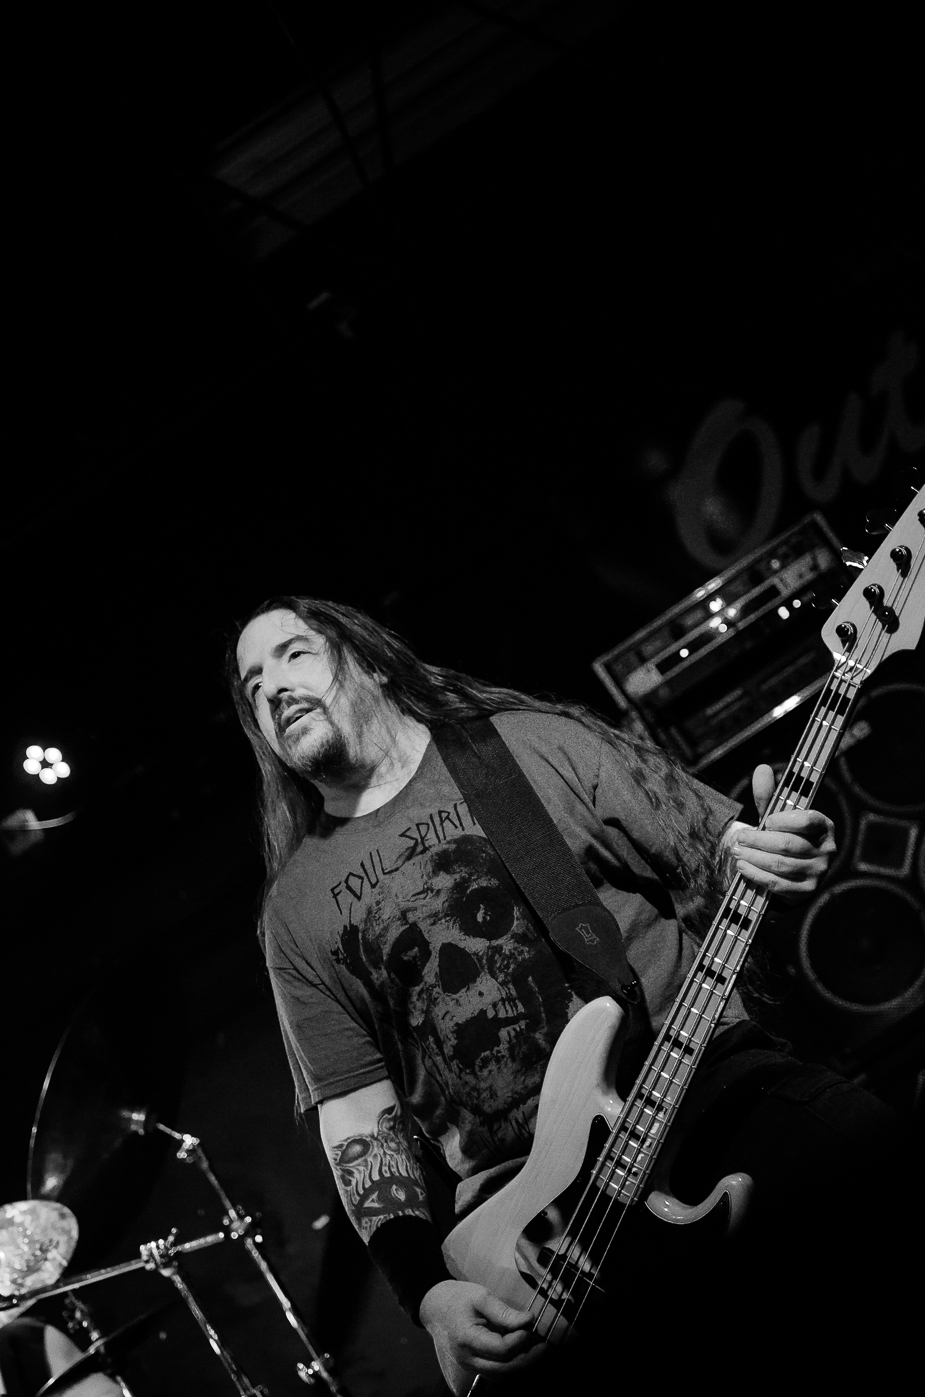 bryan trembley kriadiaz cleveland metal band